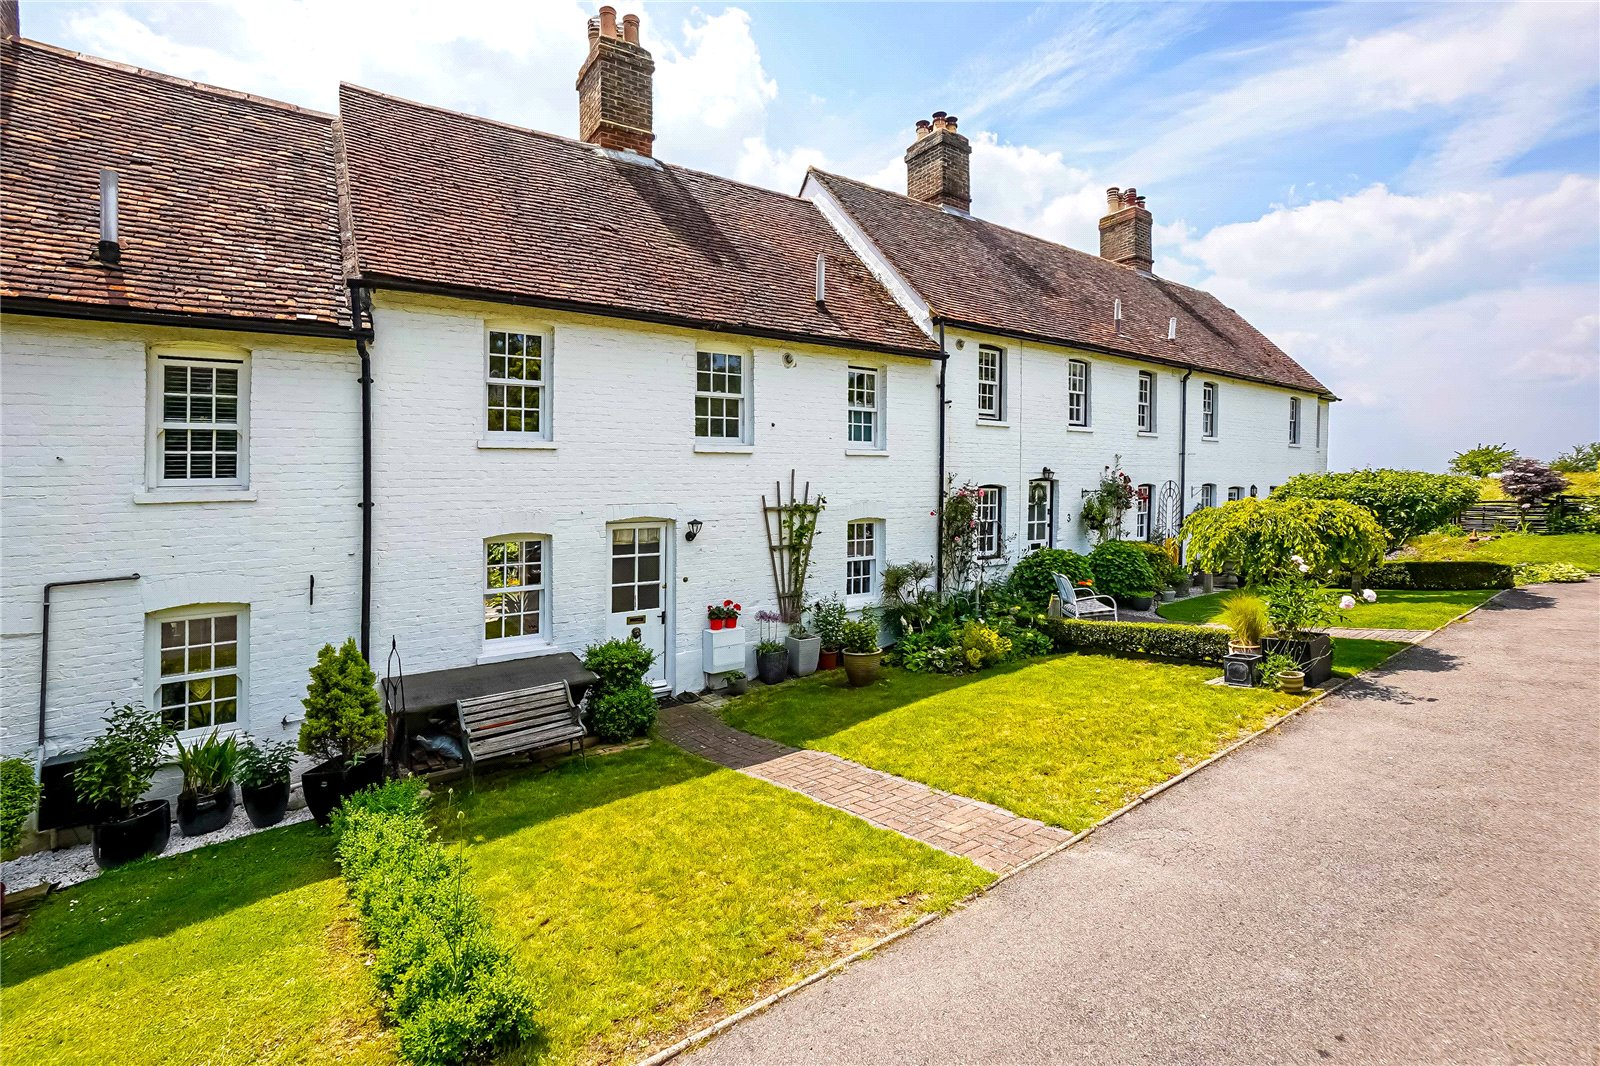 3 bed  for sale in Greenfield Cottages, The Street, ME14